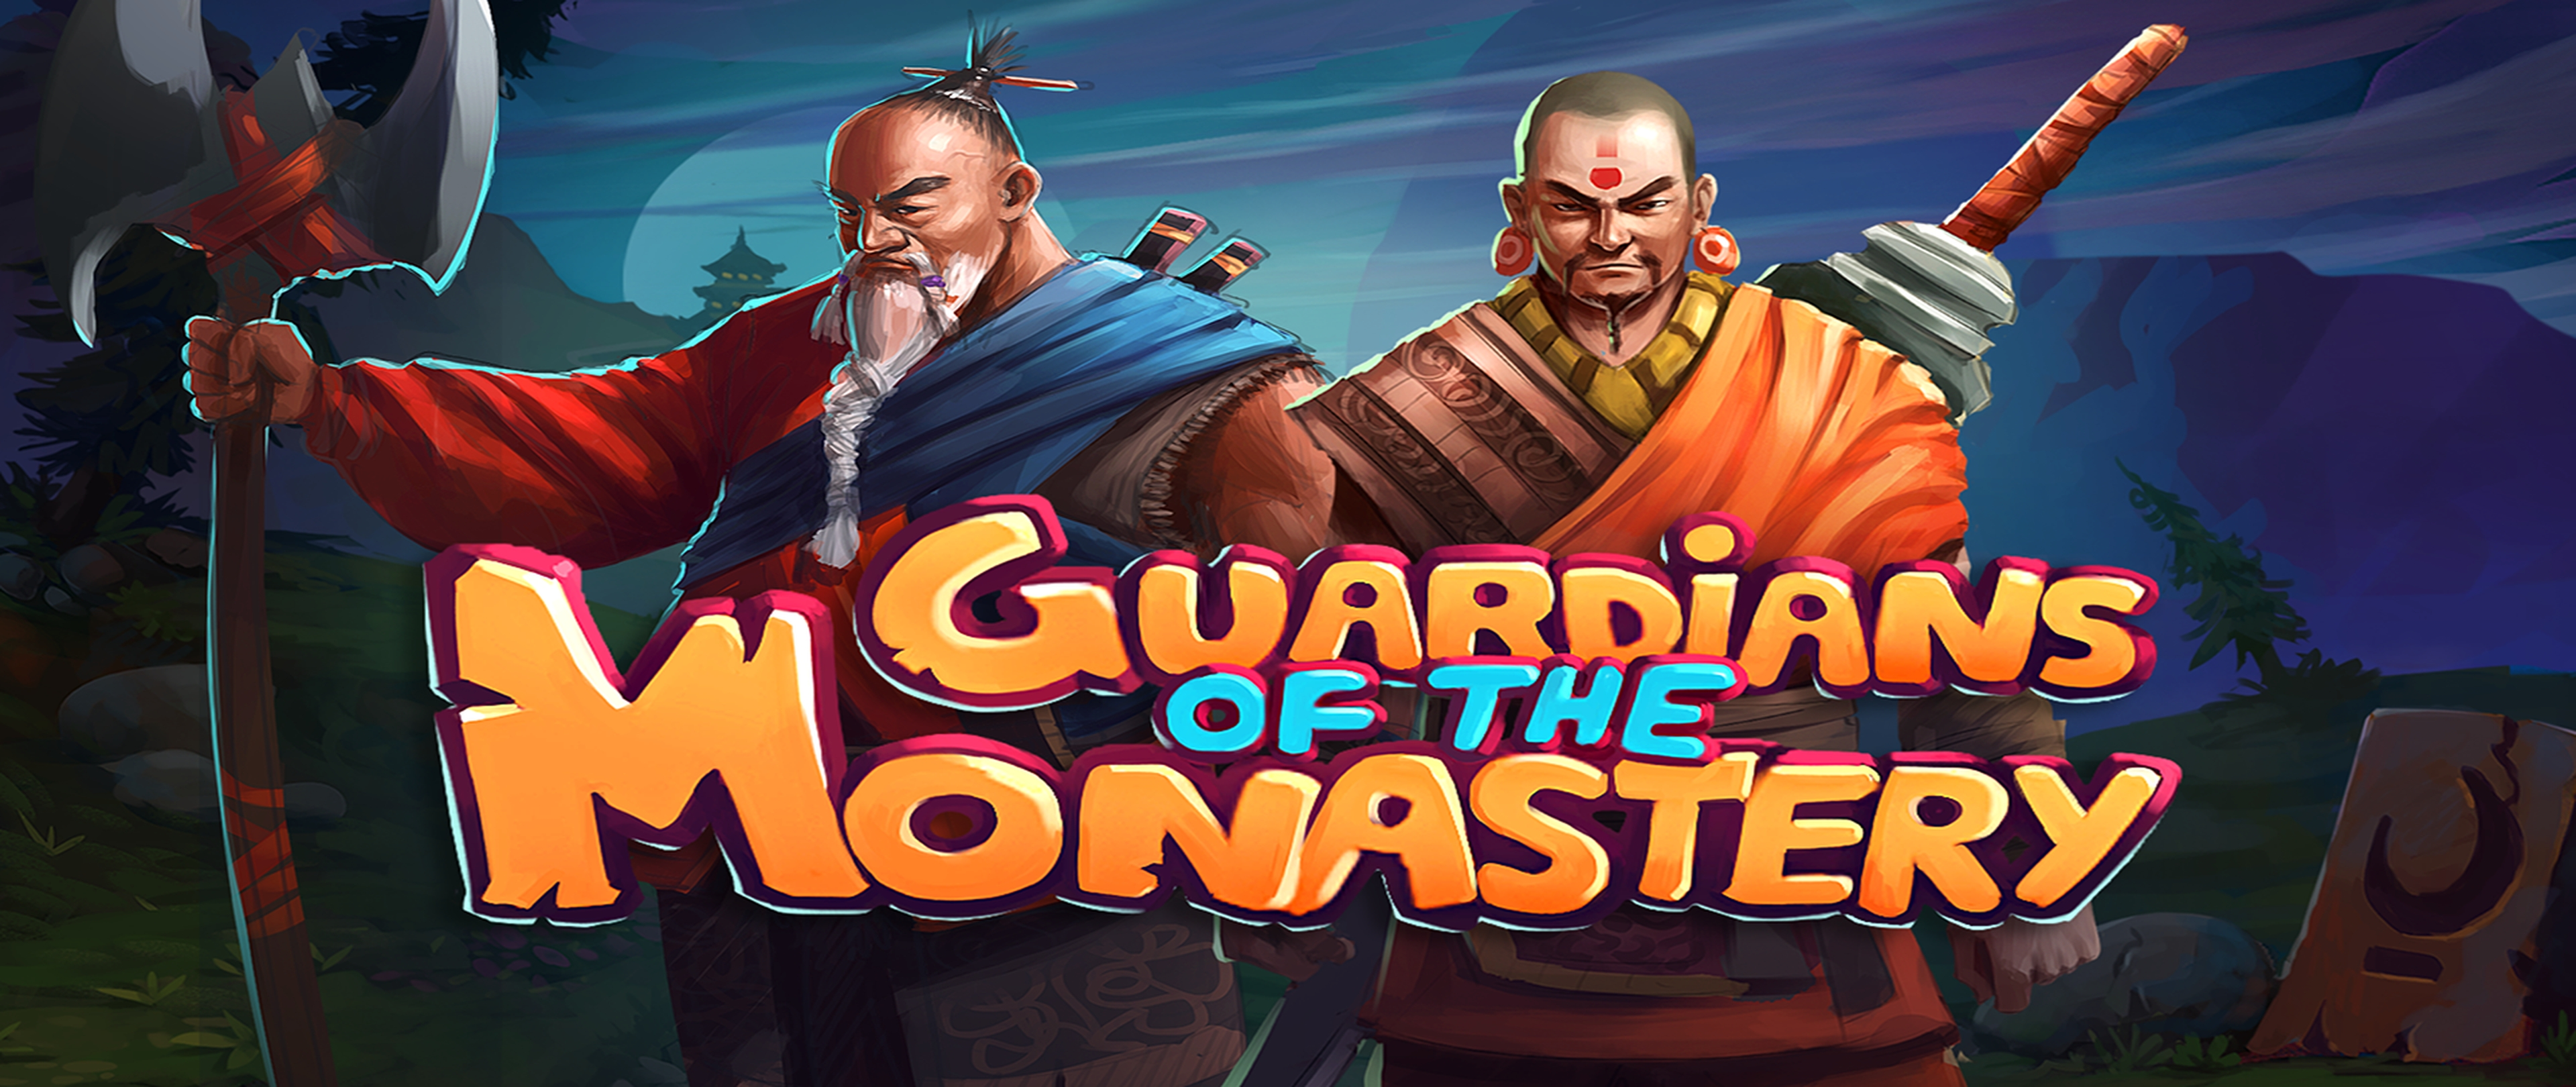 The Guardians of the Monastery Online Slot Demo Game by Merkur Gaming